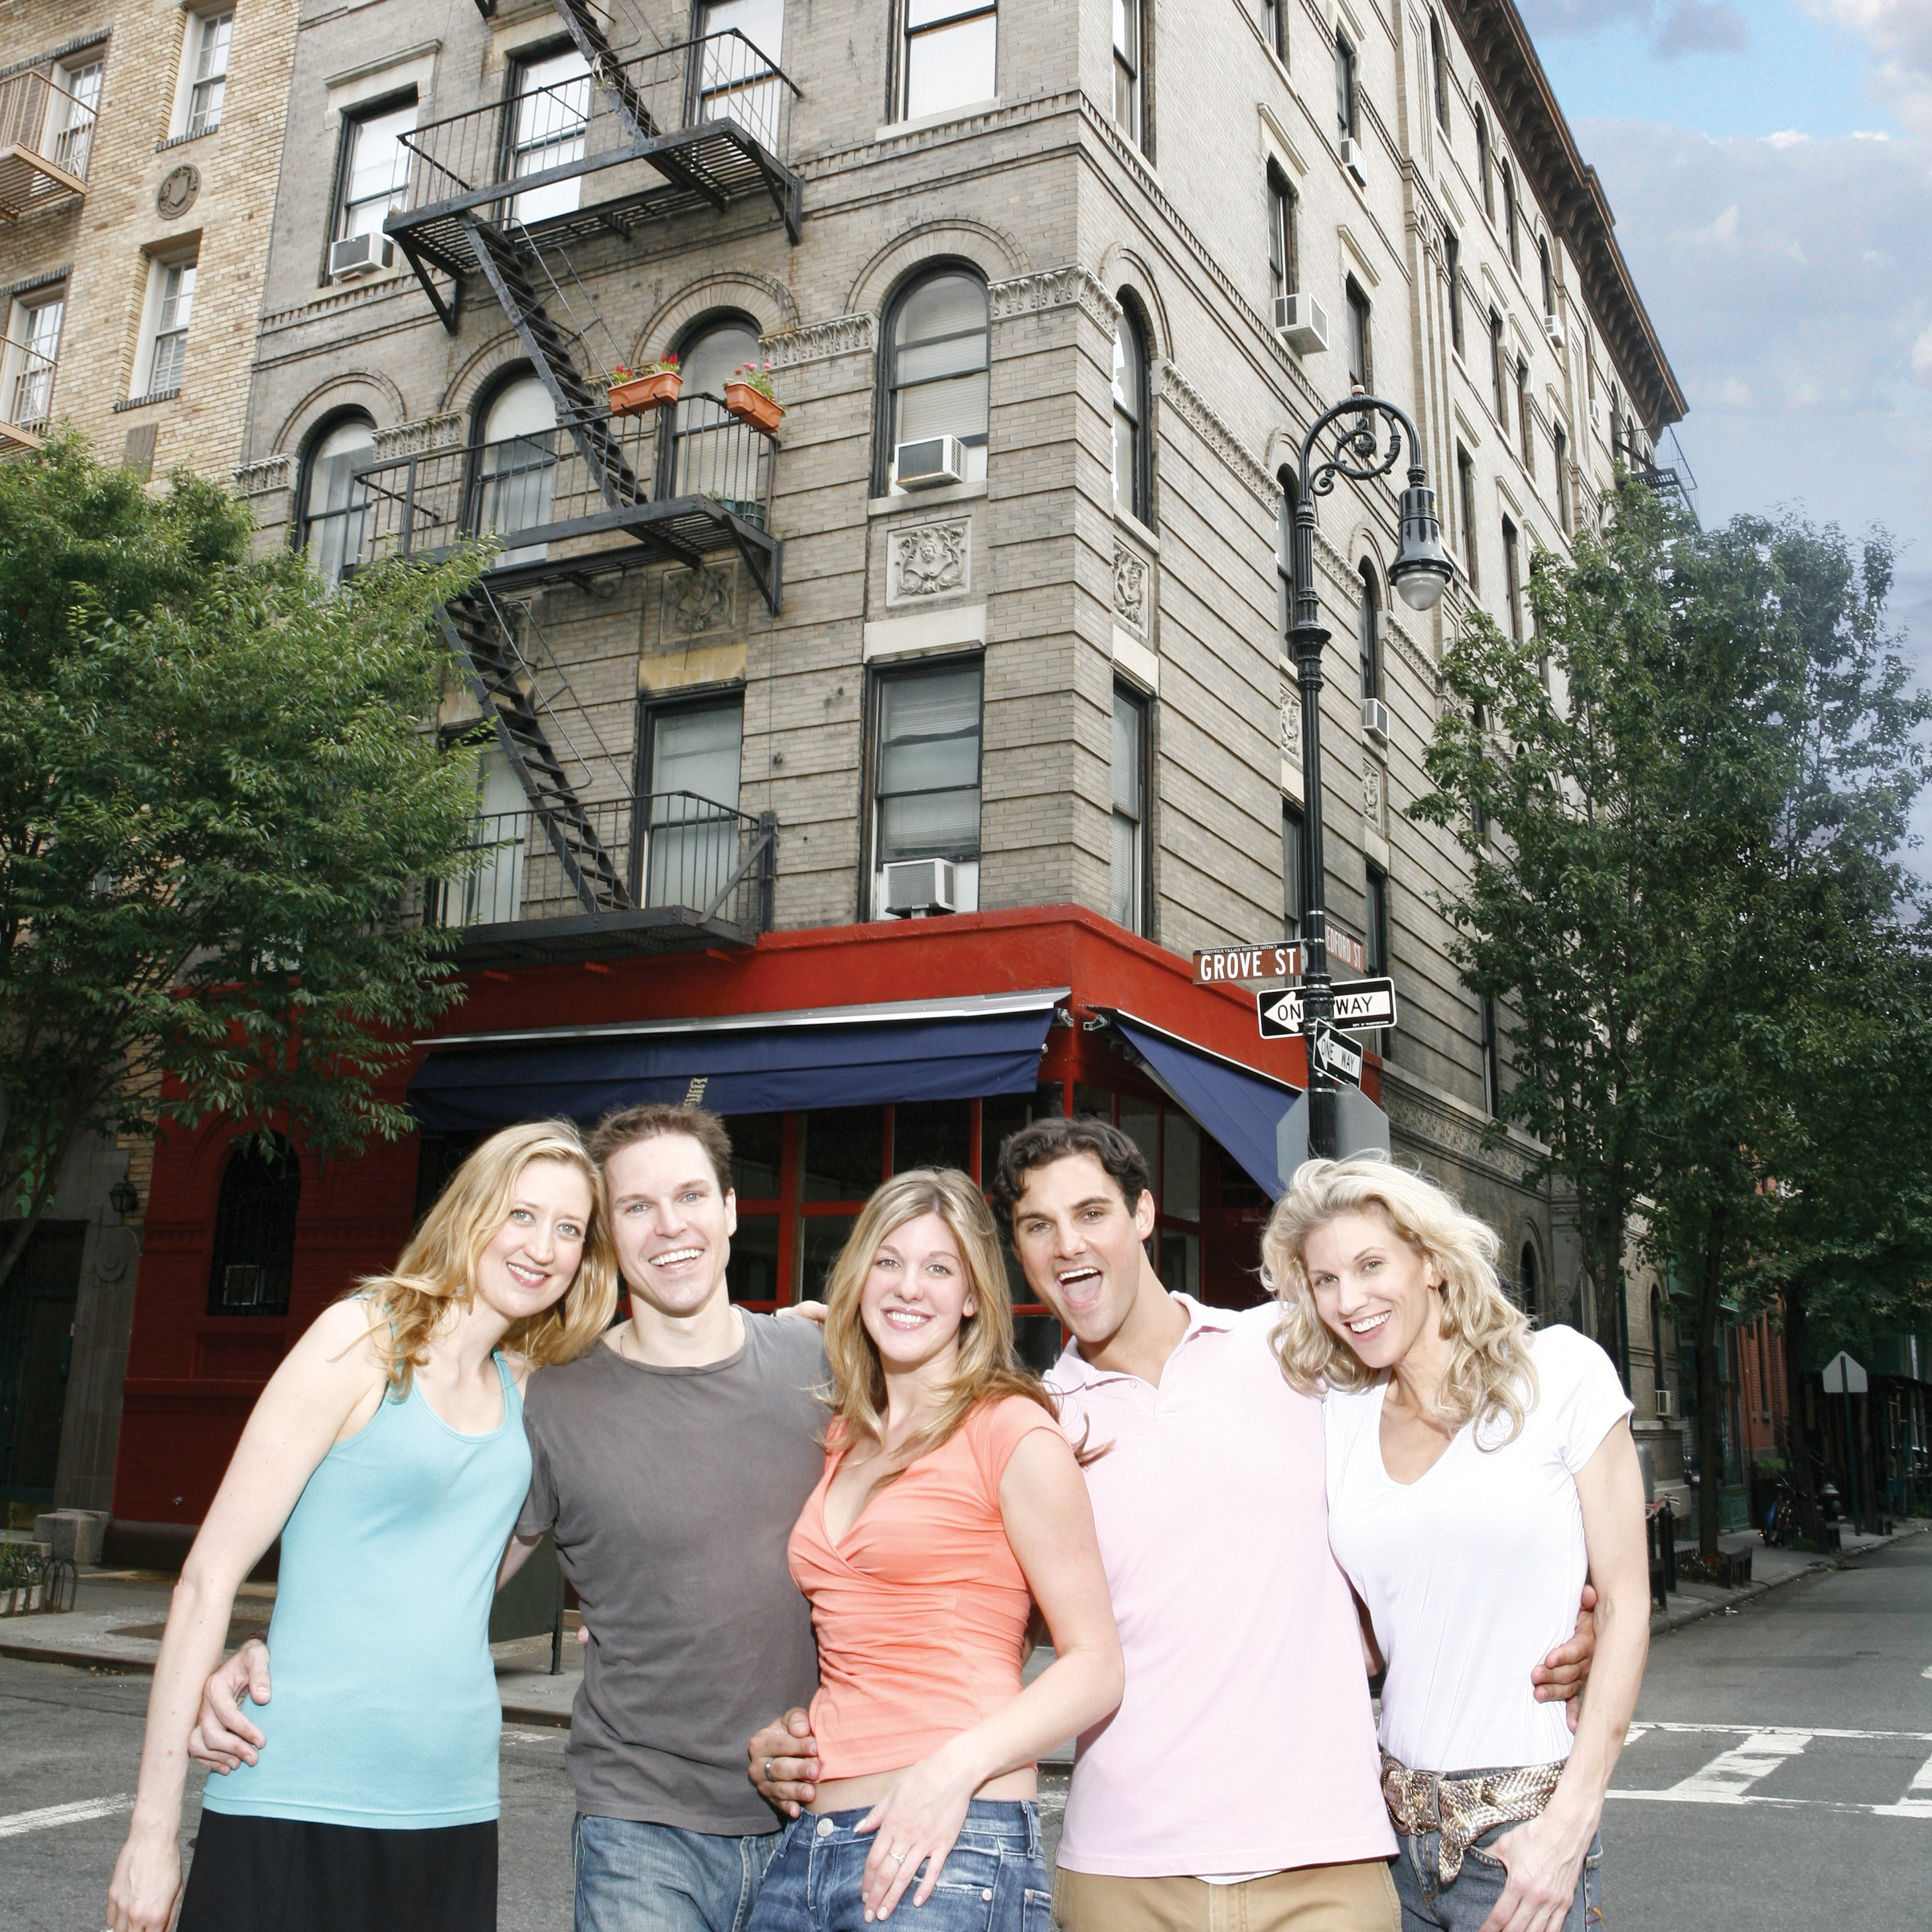 NY TV and Movie Sites Bus Tour by On Location Tours